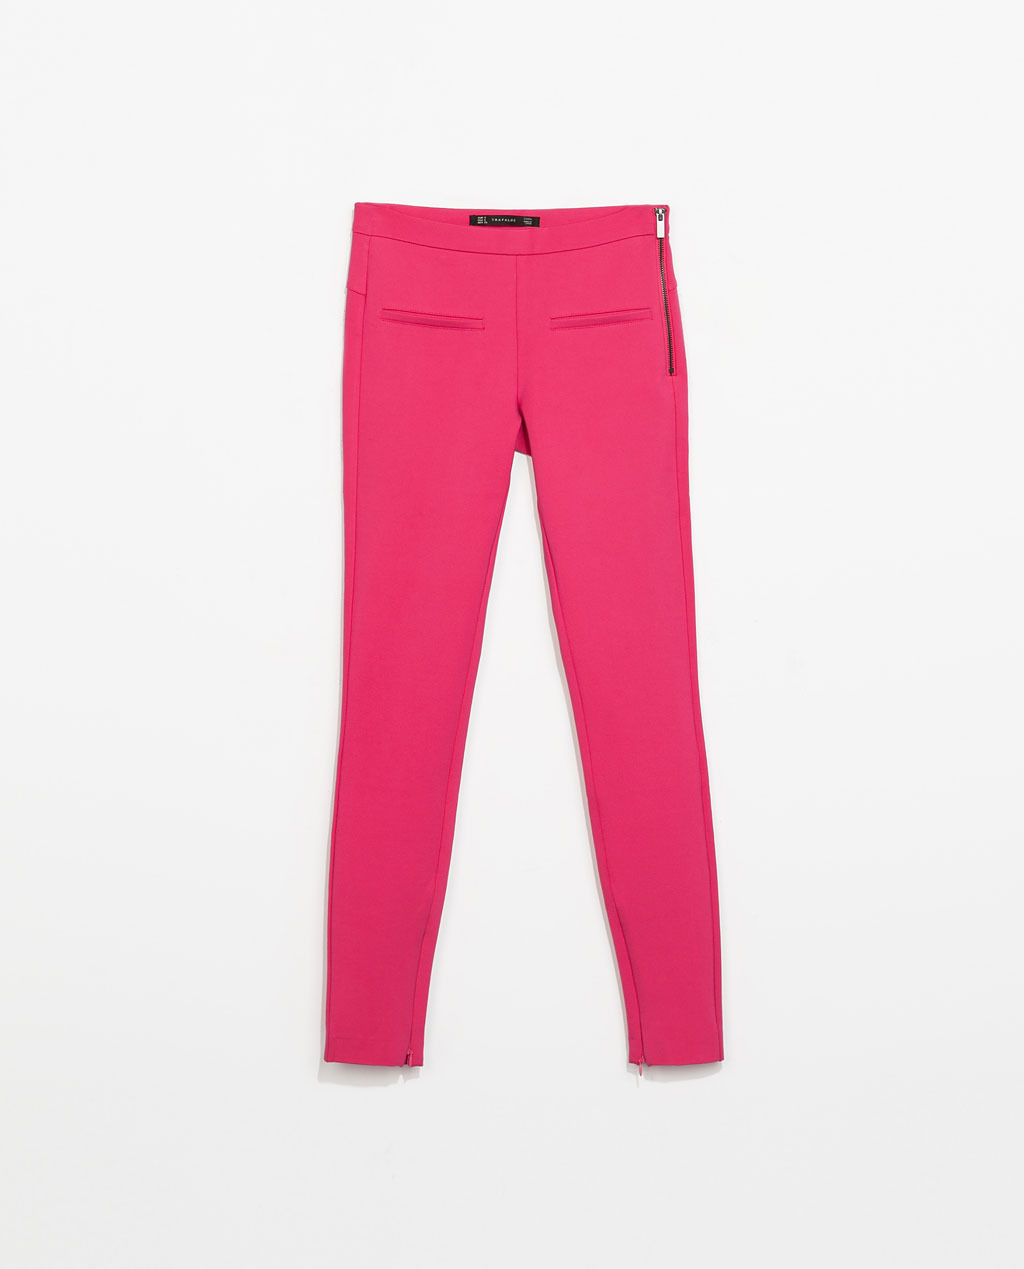 Trousers With Side Zip - pattern: plain; style: leggings; hip detail: front pockets at hip; waist: mid/regular rise; predominant colour: hot pink; occasions: casual, creative work; length: ankle length; fibres: viscose/rayon - stretch; fit: skinny/tight leg; texture group: jersey - stretchy/drapey; trends: hot brights; season: s/s 2014